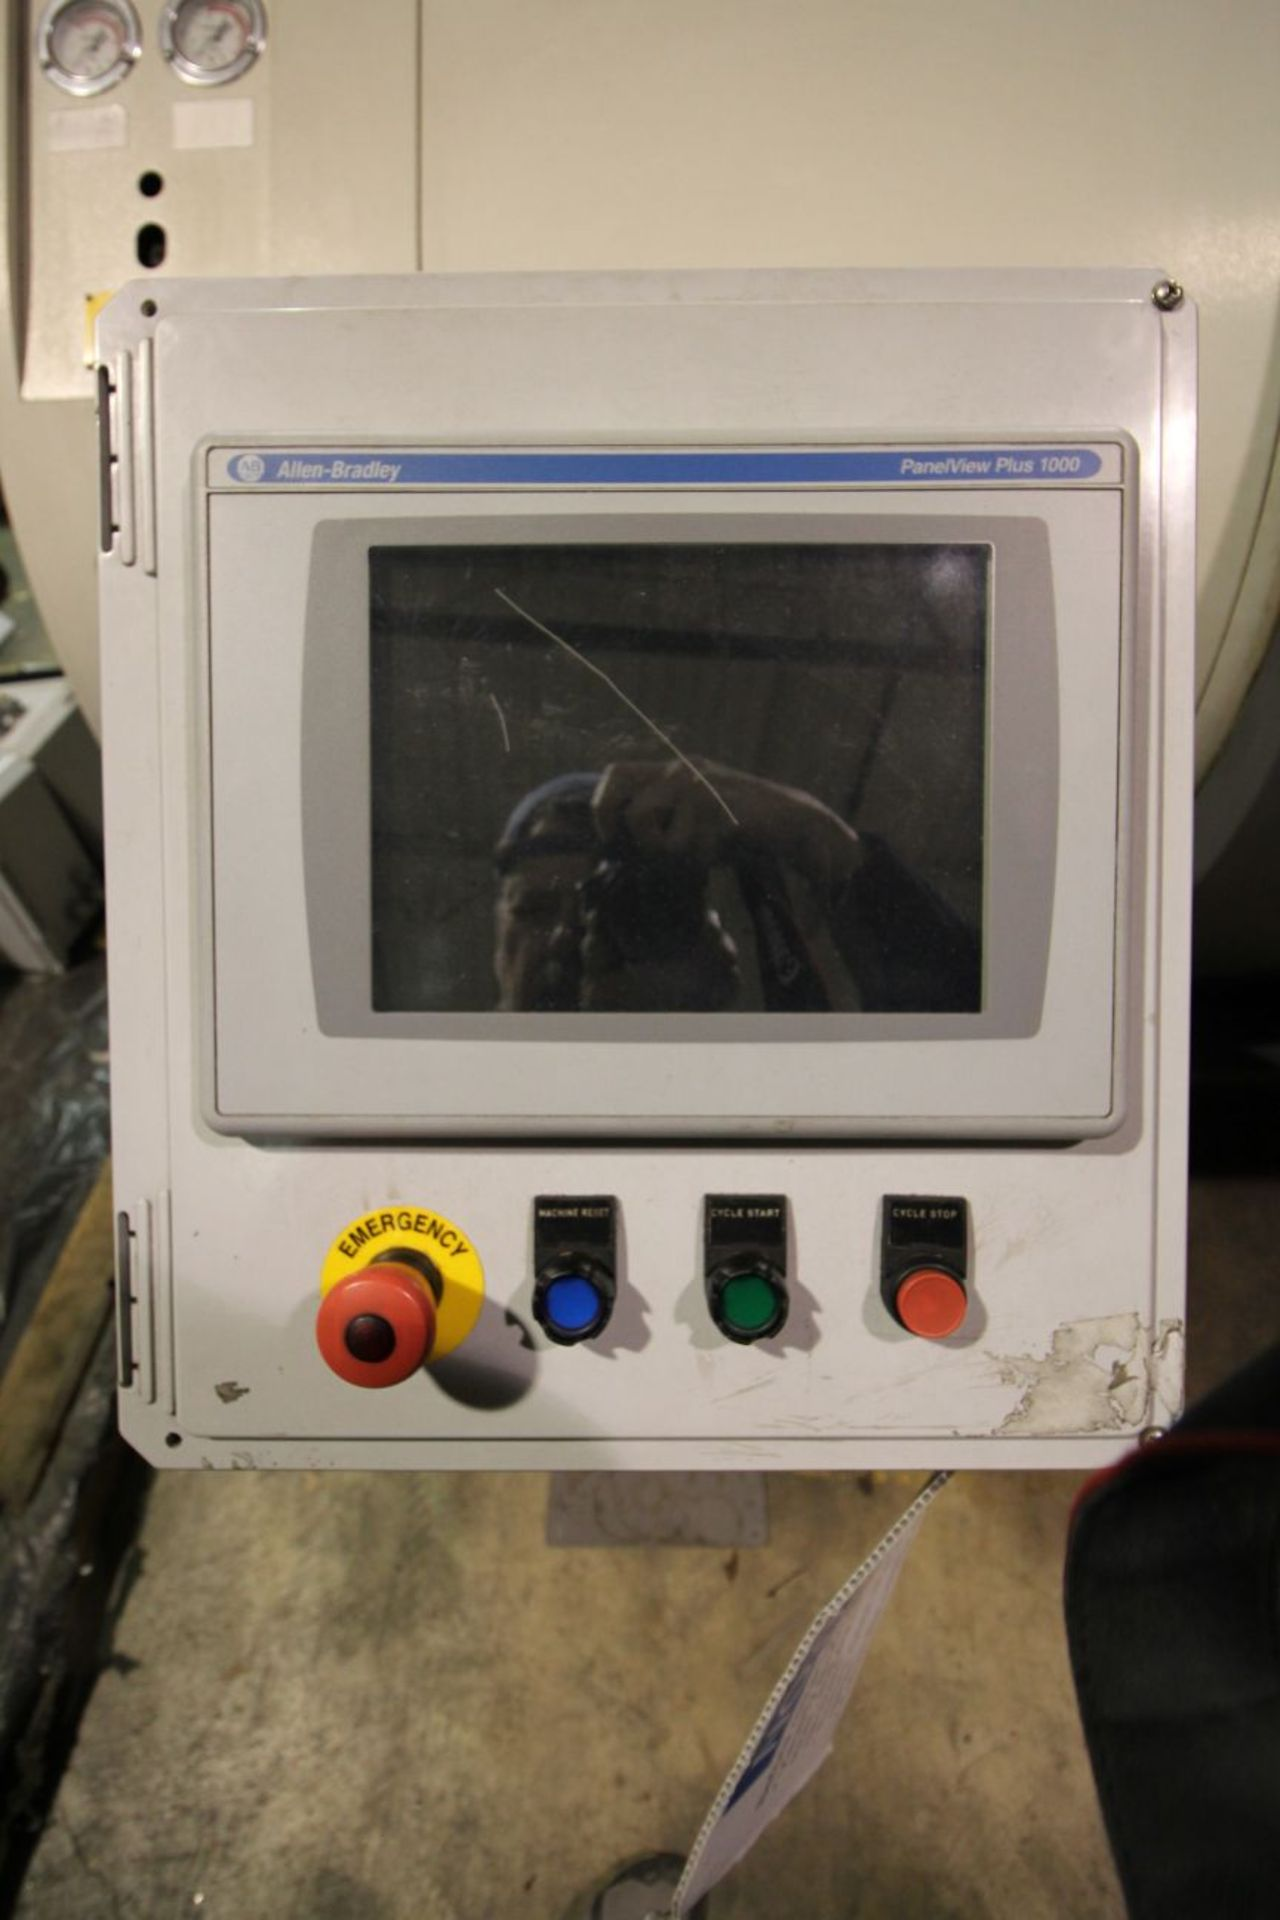 ALLEN BRADLEY PLC CONTROL, PANELVIEW PLUS 1000 CONTROL ON A STAND - Image 3 of 3